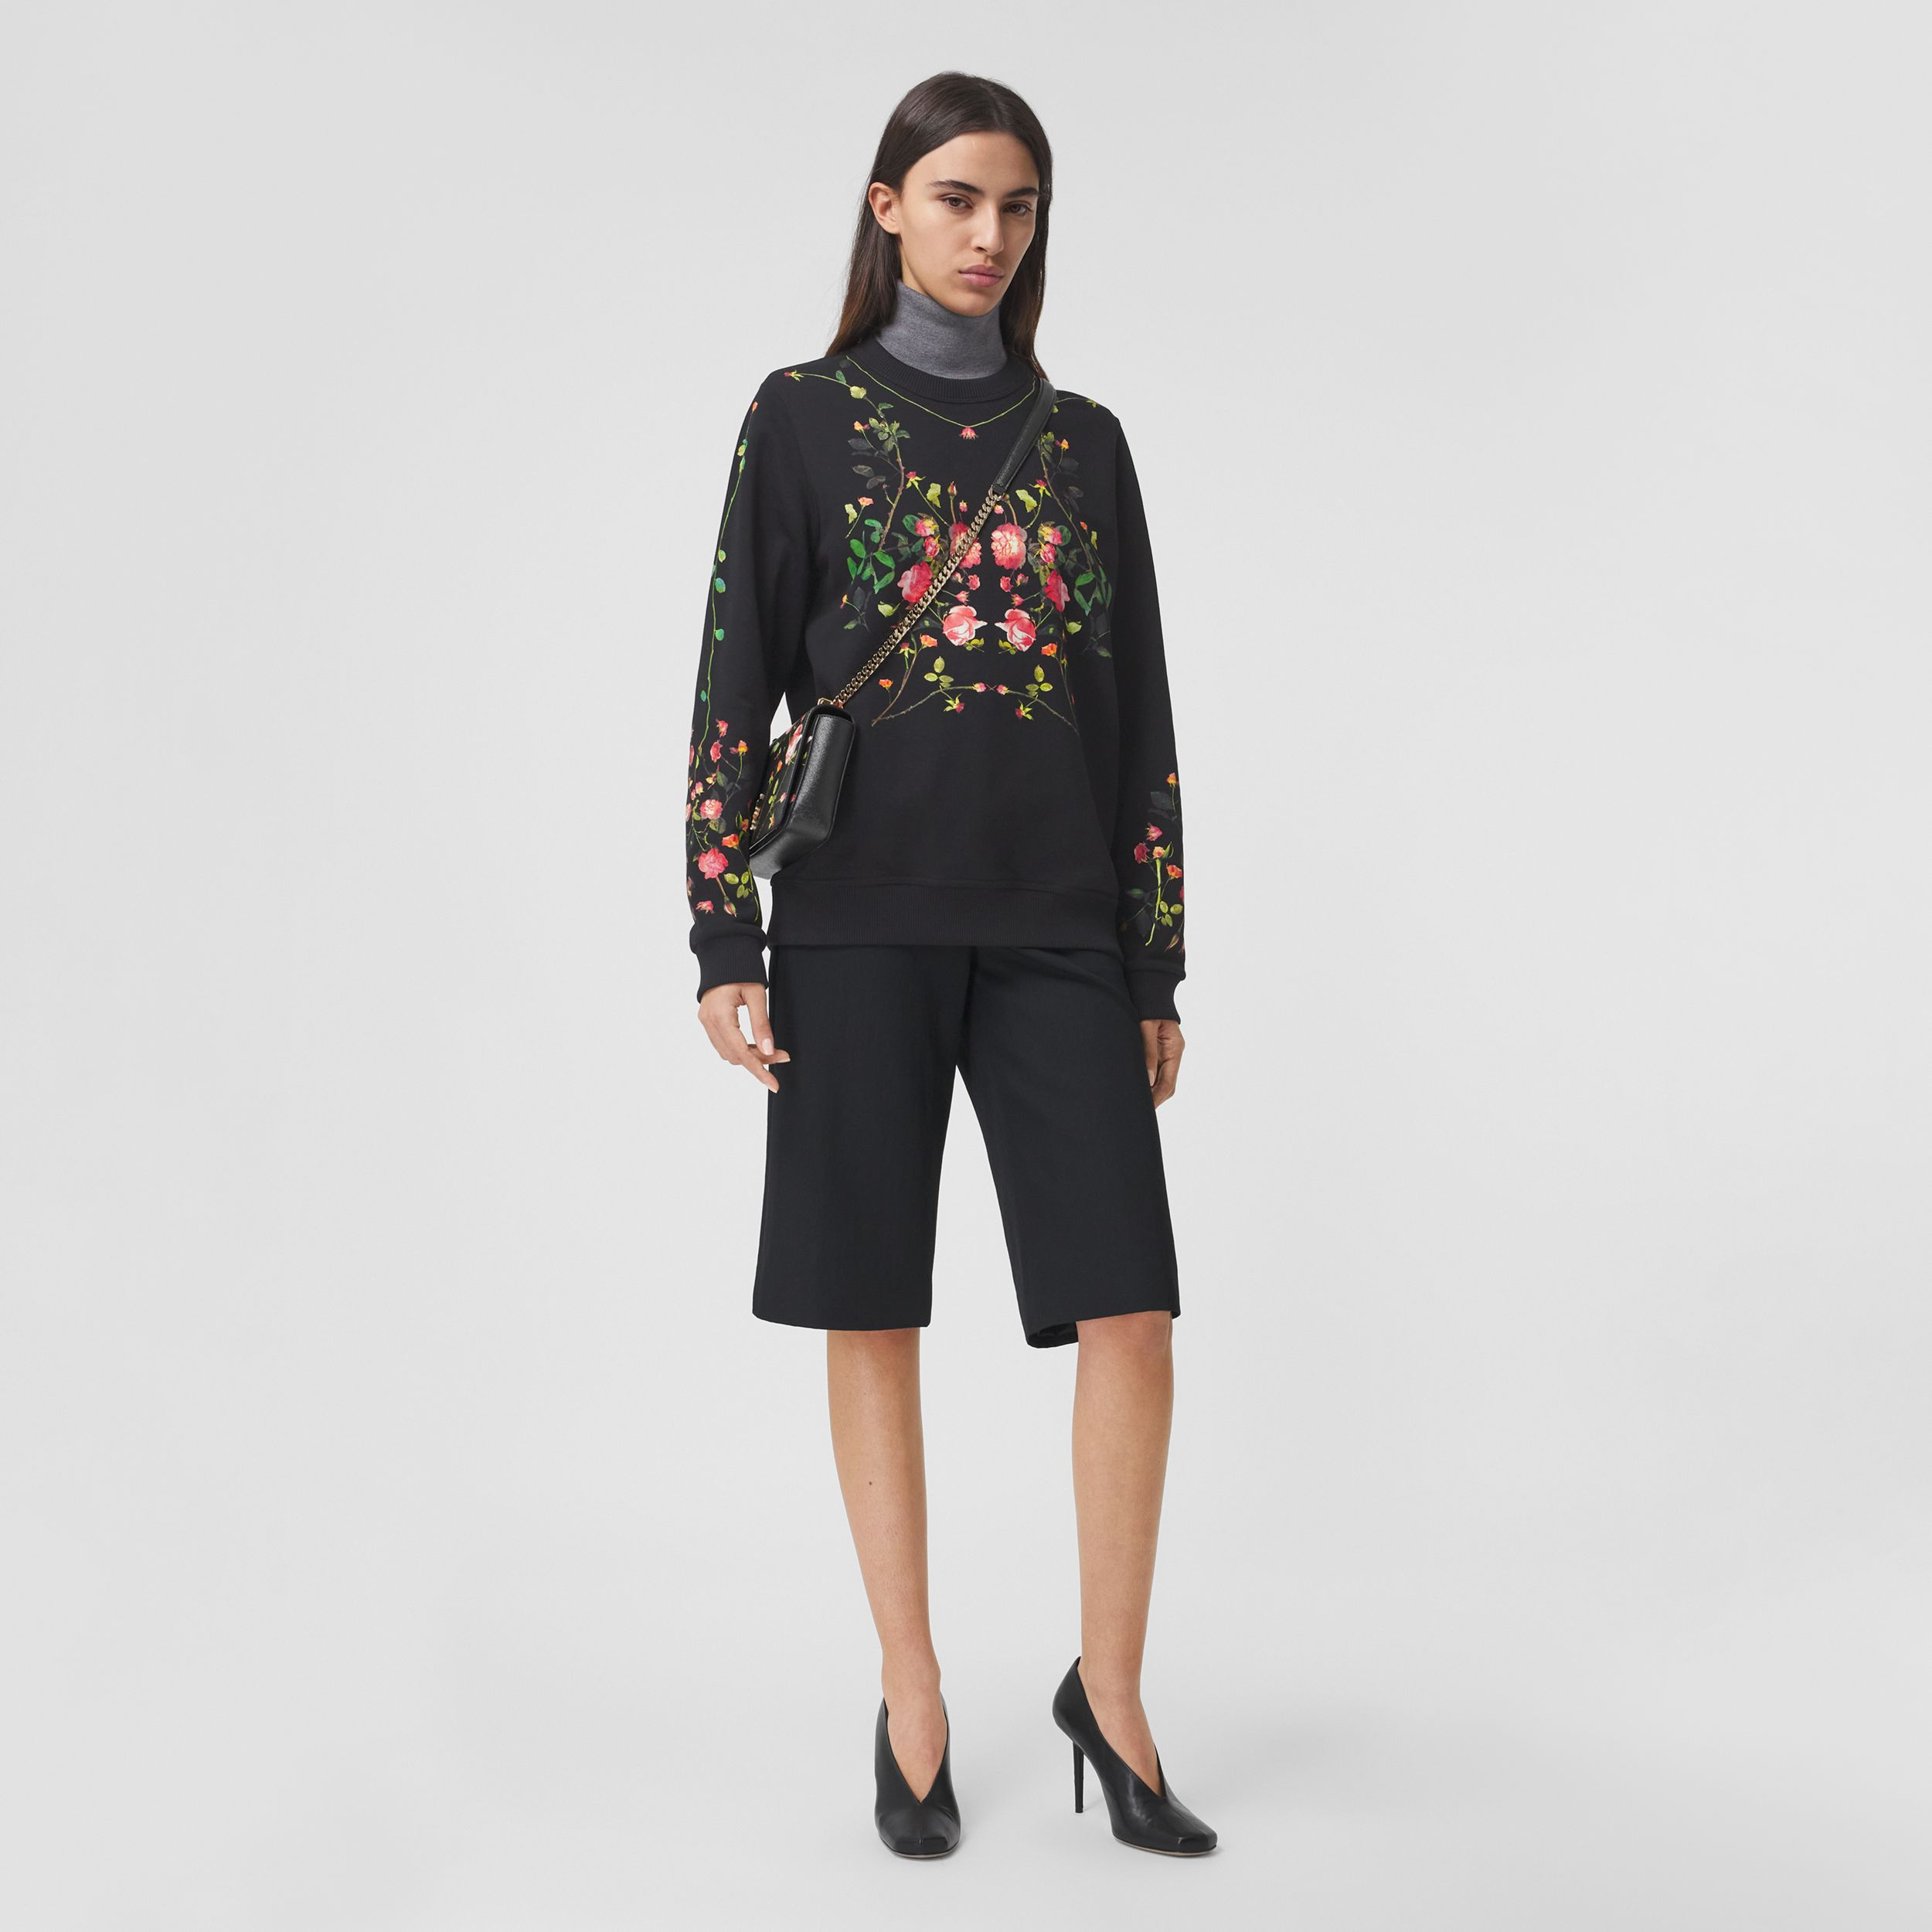 Rose Print Cotton Oversized Sweatshirt in Black - Women | Burberry Canada - 1